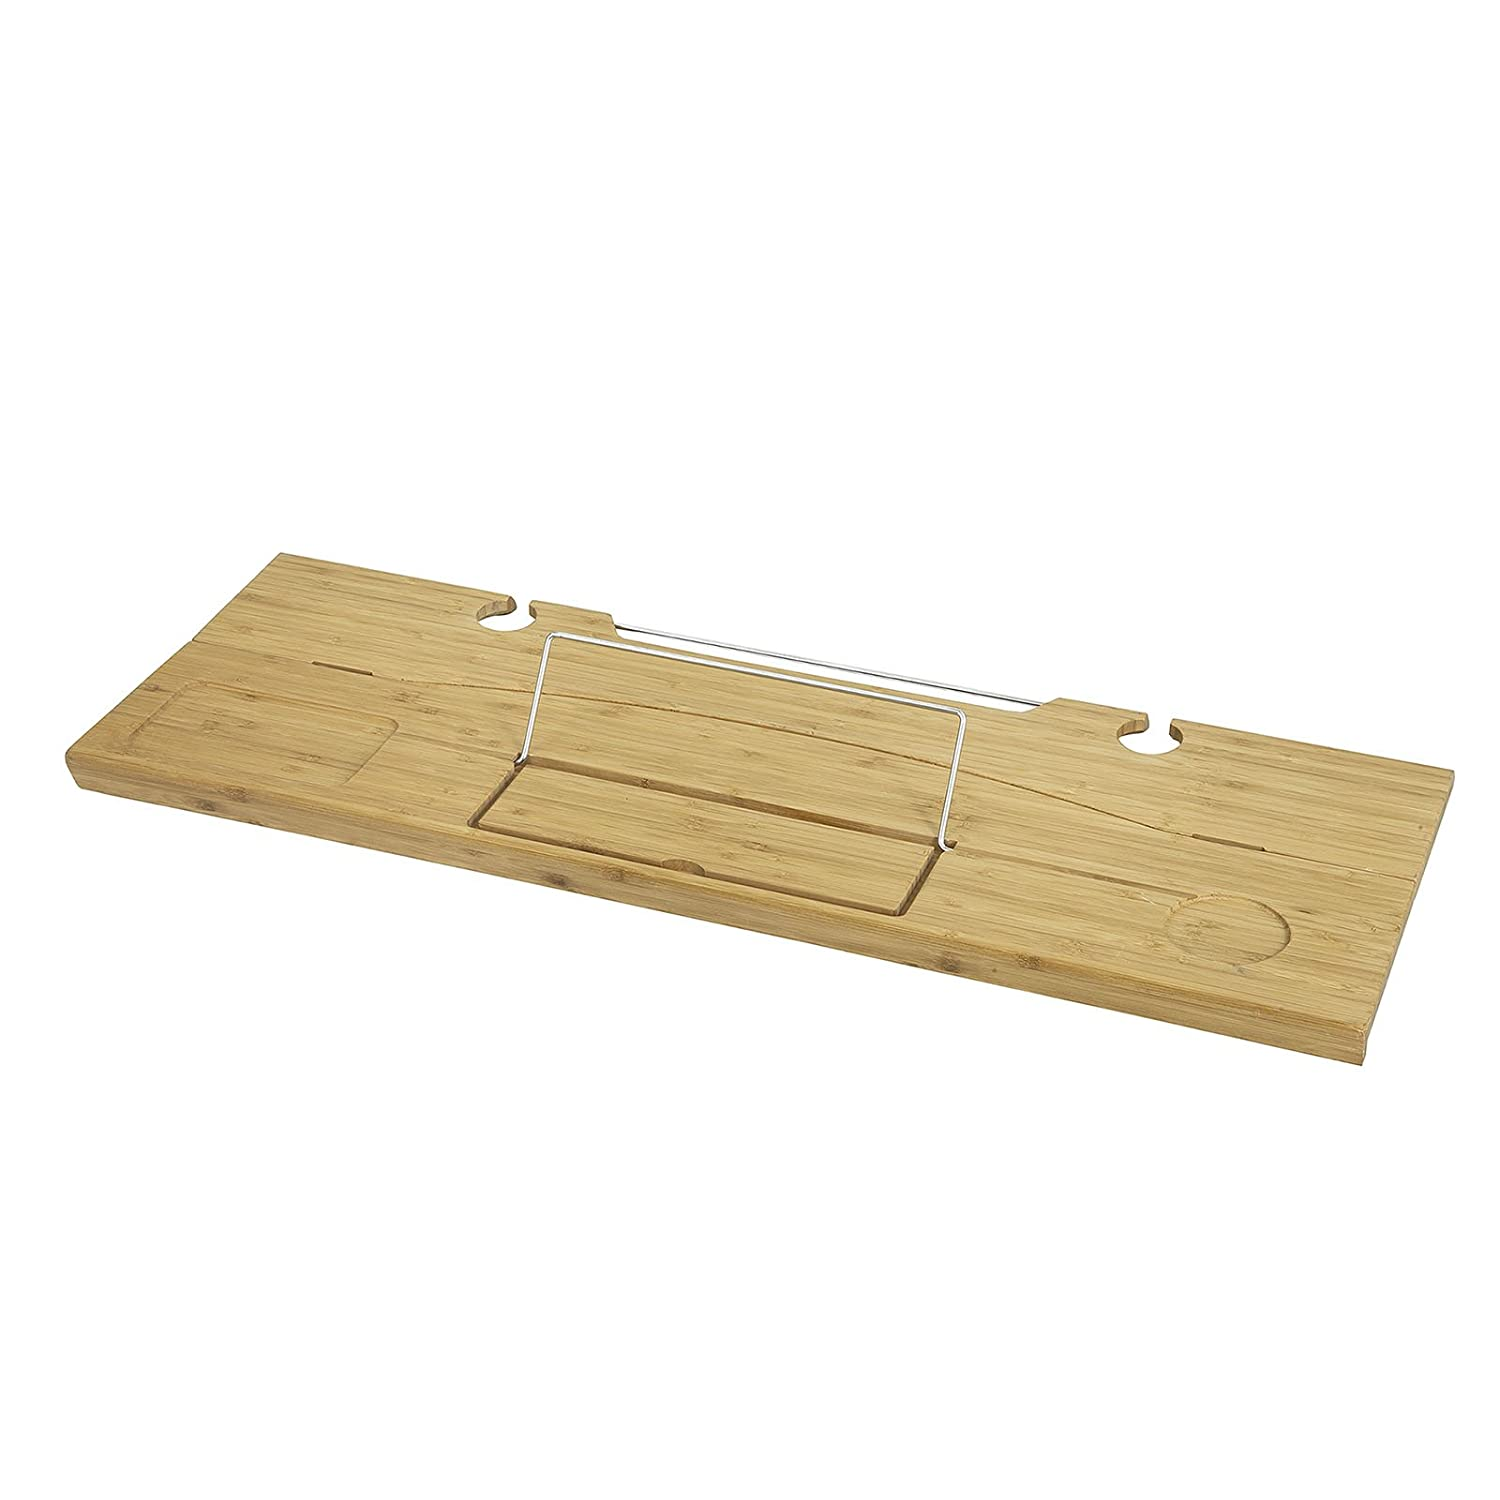 SoBuy Promotion -20% FRG251-N, Foldable Bamboo Bathtub Rack Caddy Tray with Book Rest iPad Phone Wine Holder